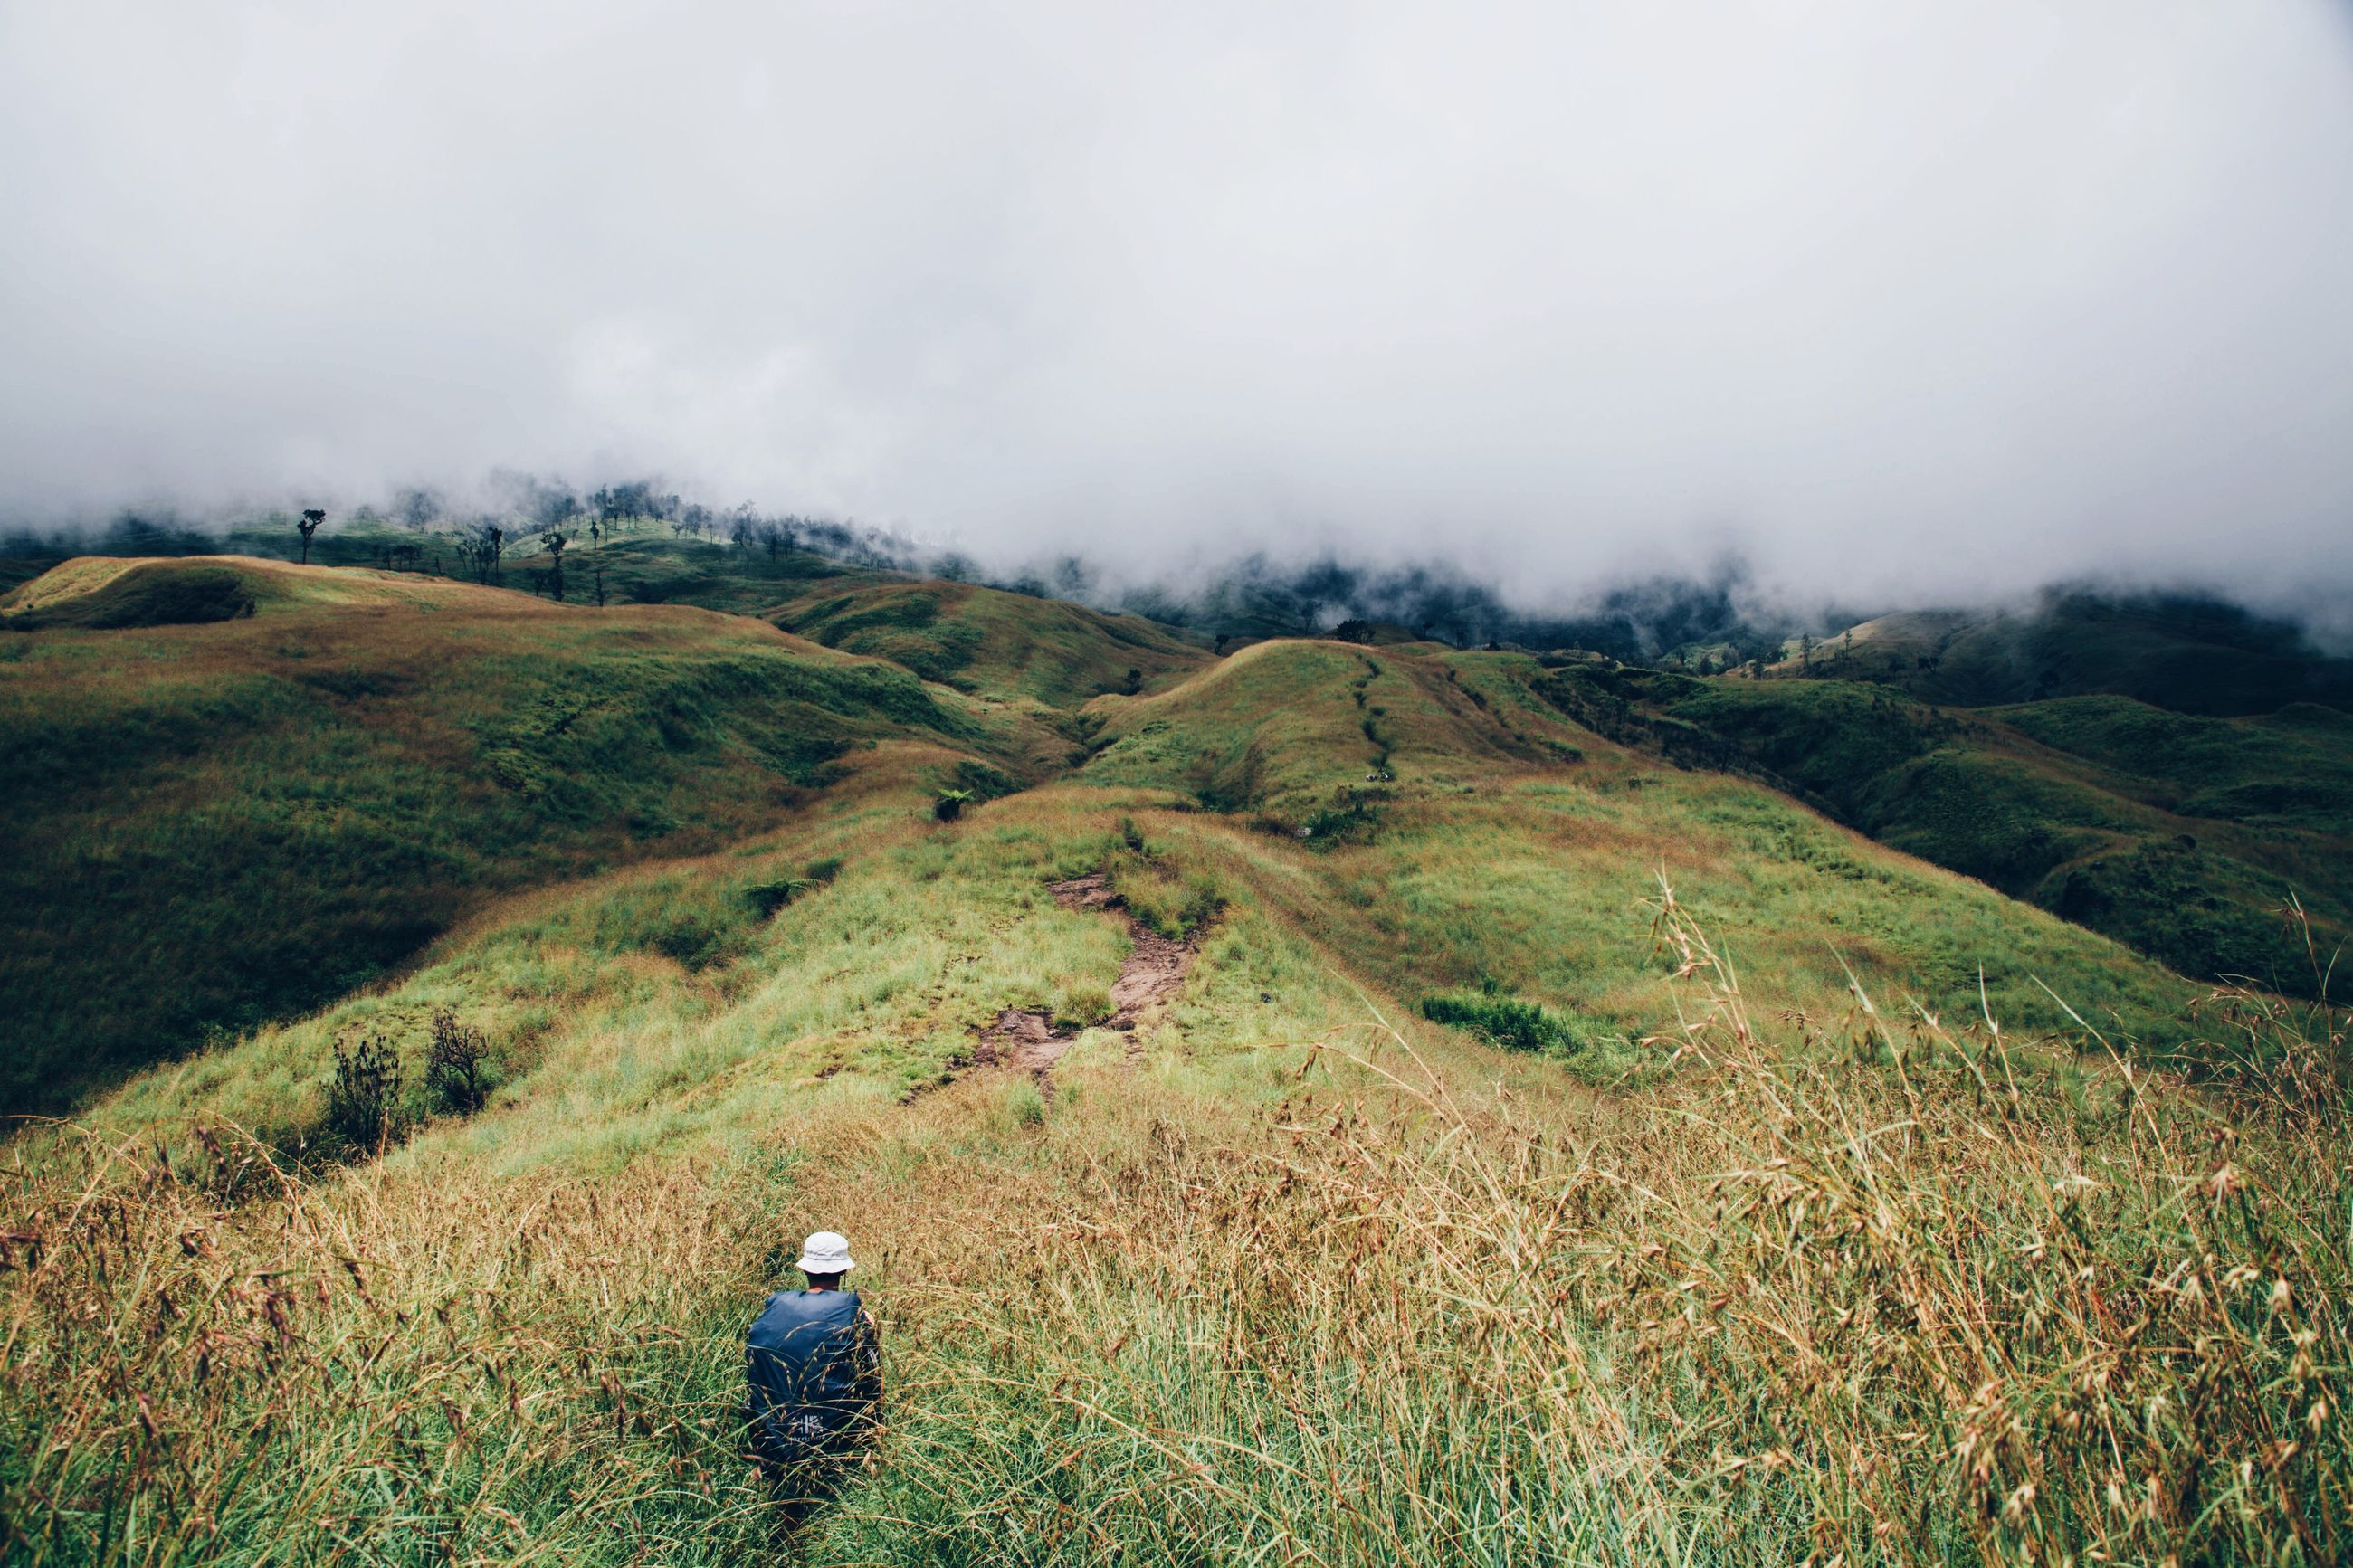 Rear view of hiker on grassy field against mountains